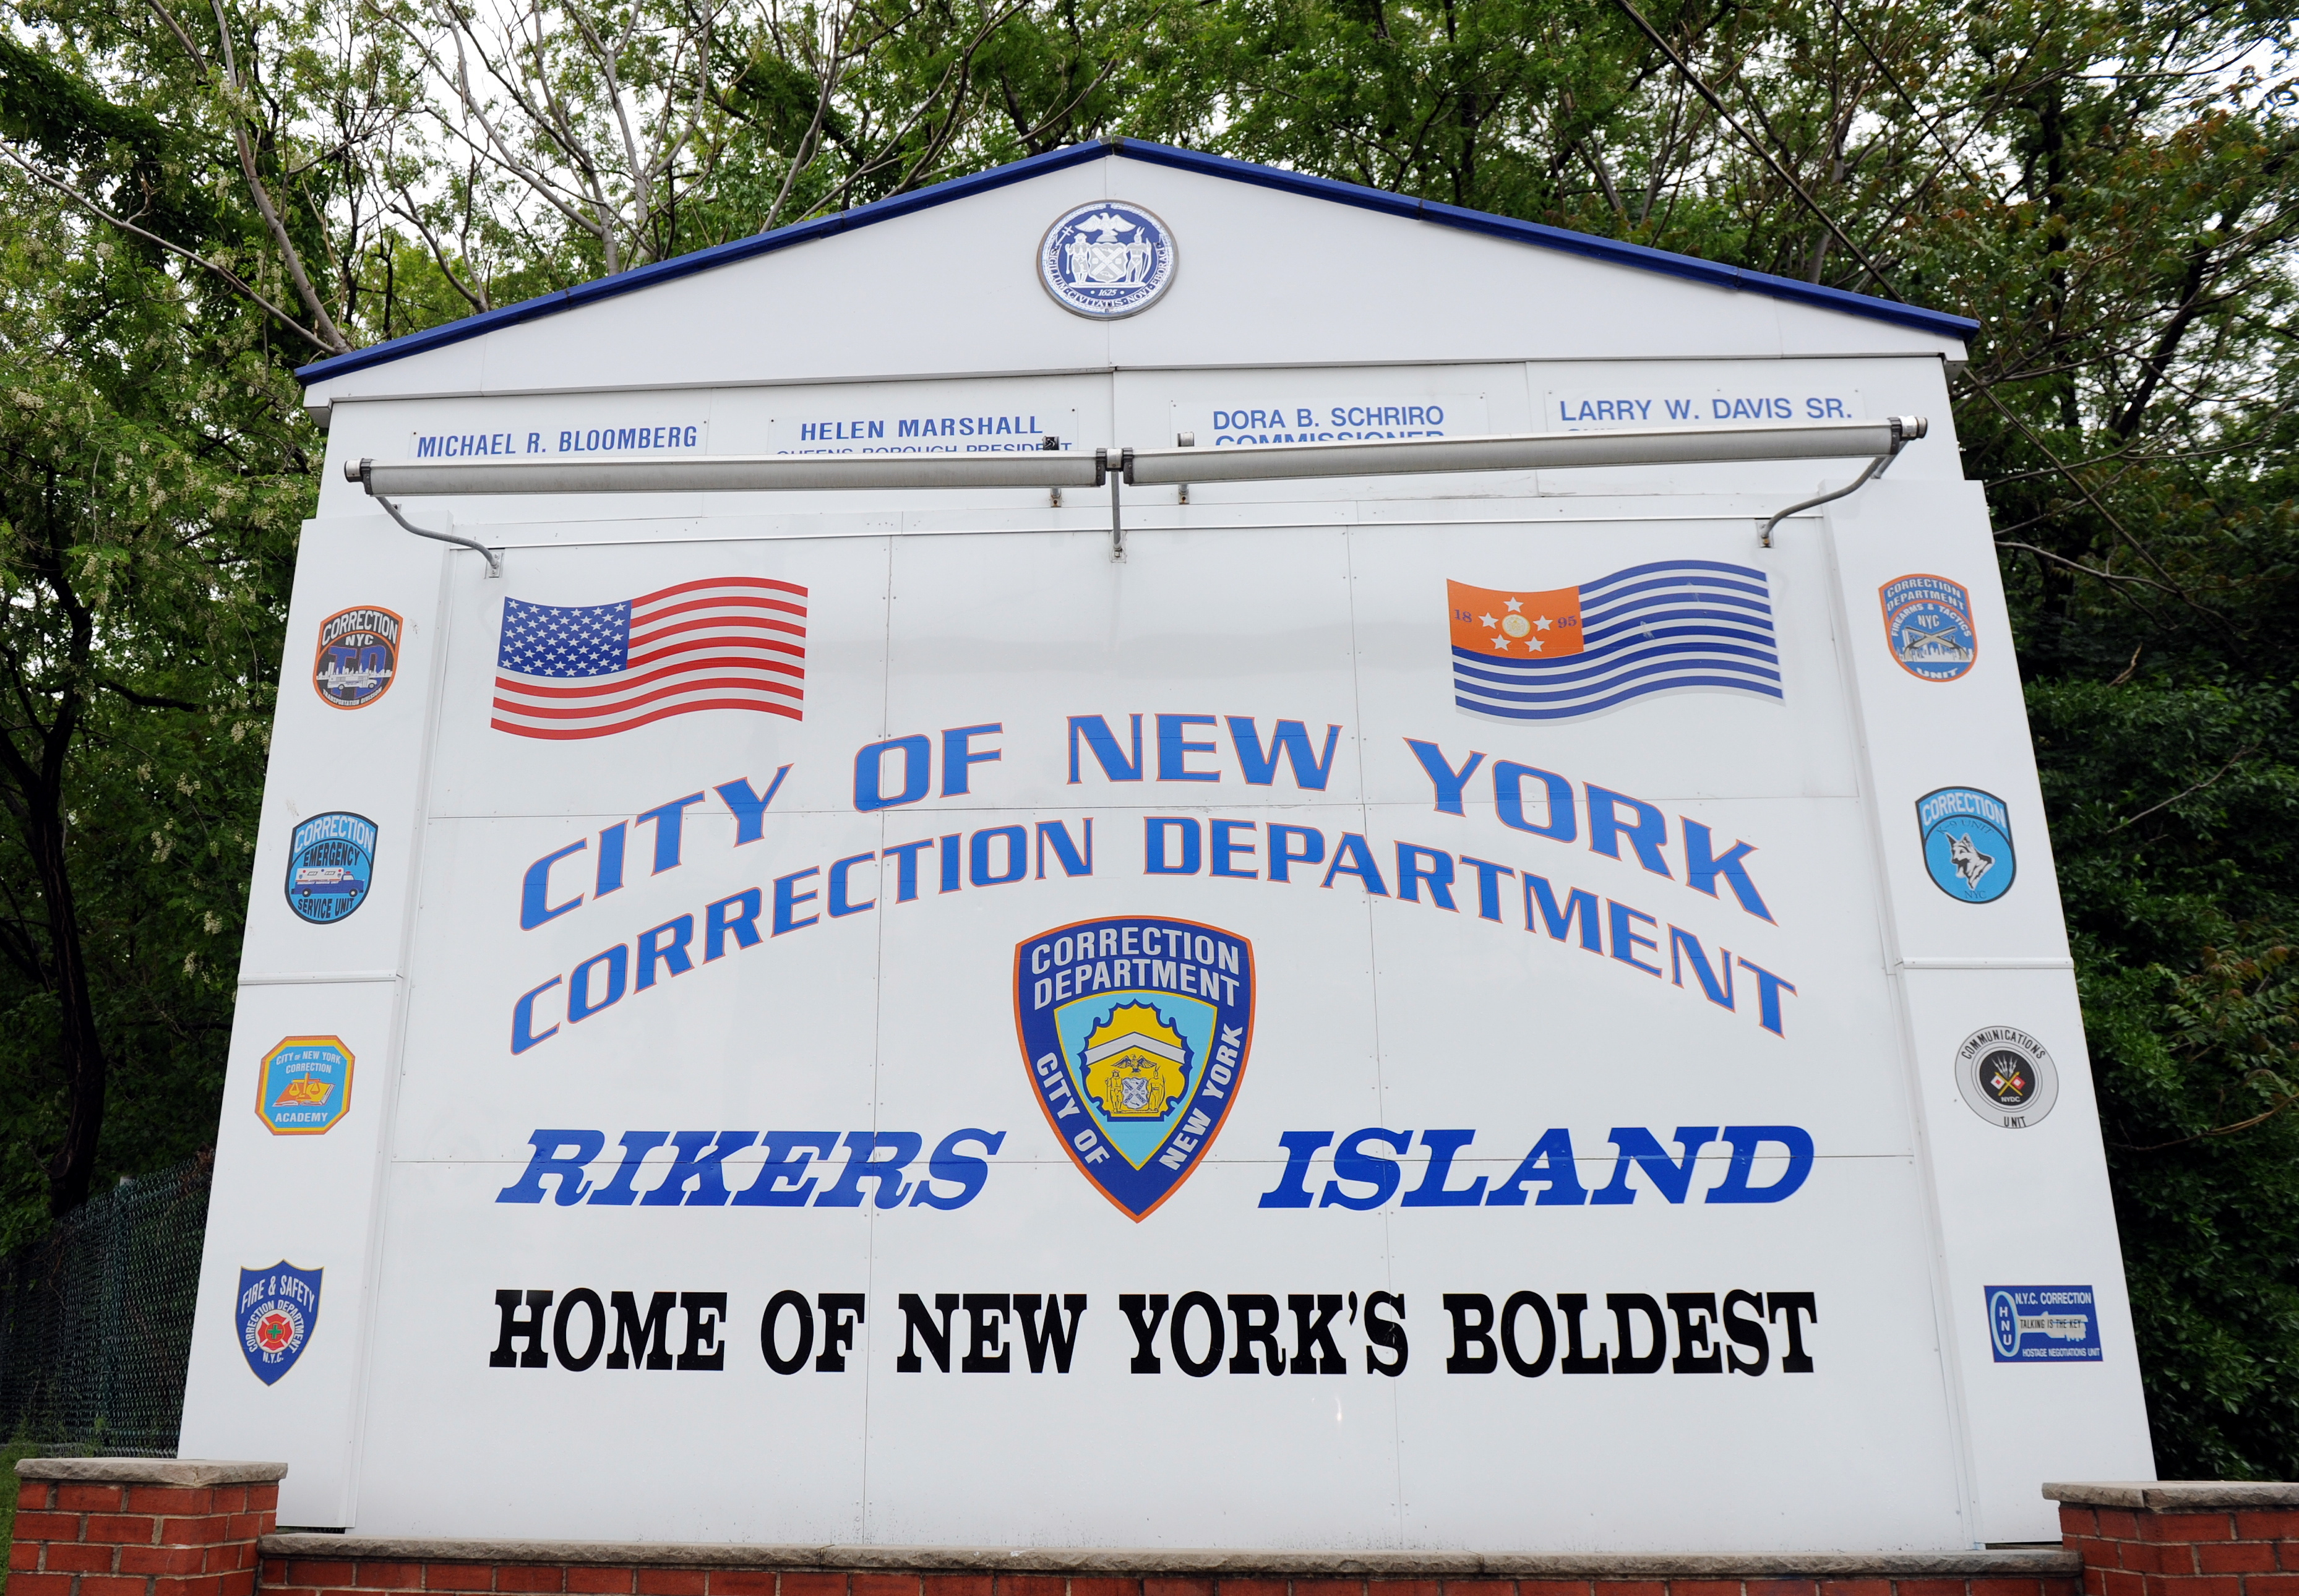 New York - Campaign Aims To Bail Out More Than 500 Prisoners